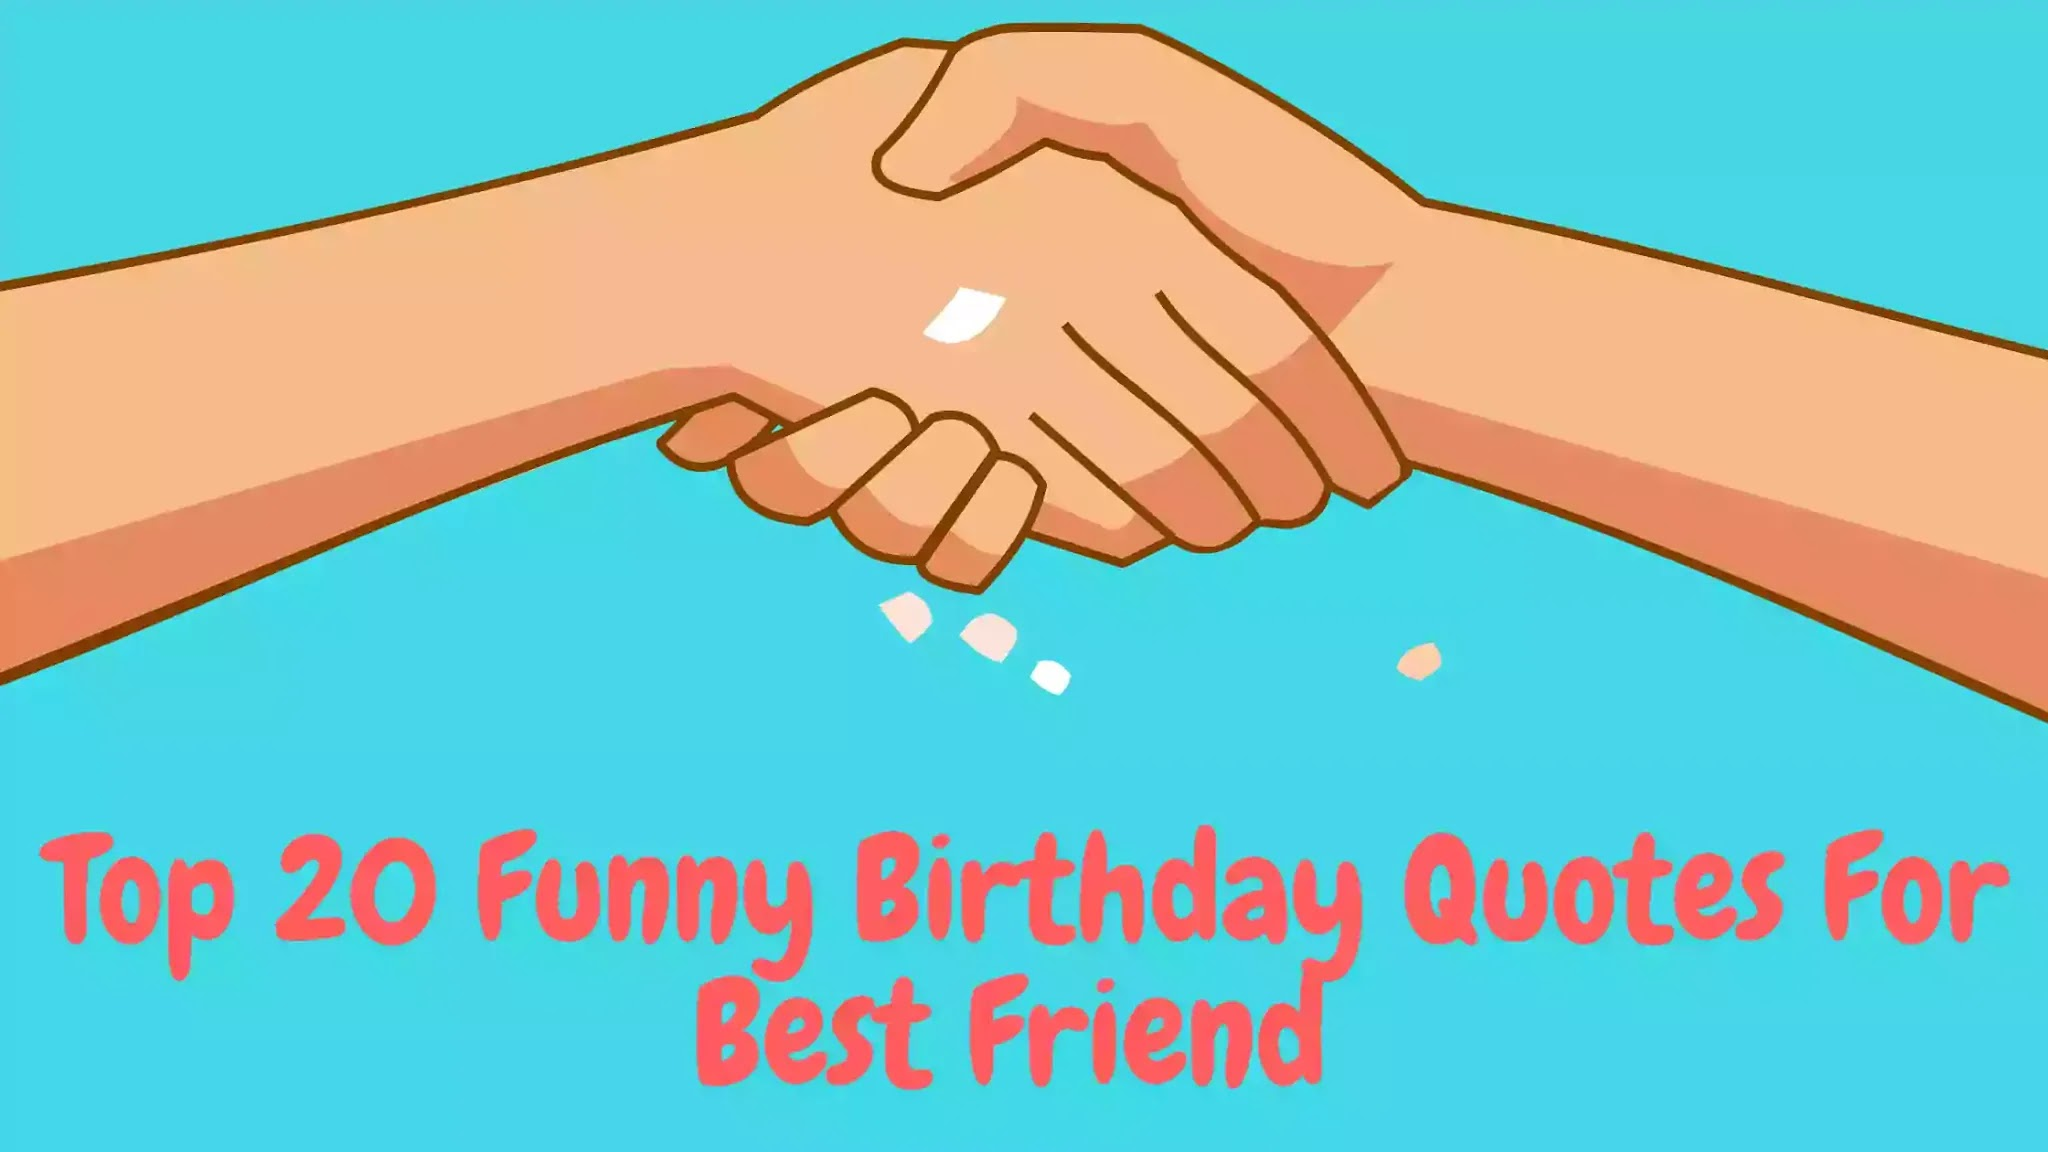 Top 20 Funny Birthday Quotes For Best Friend